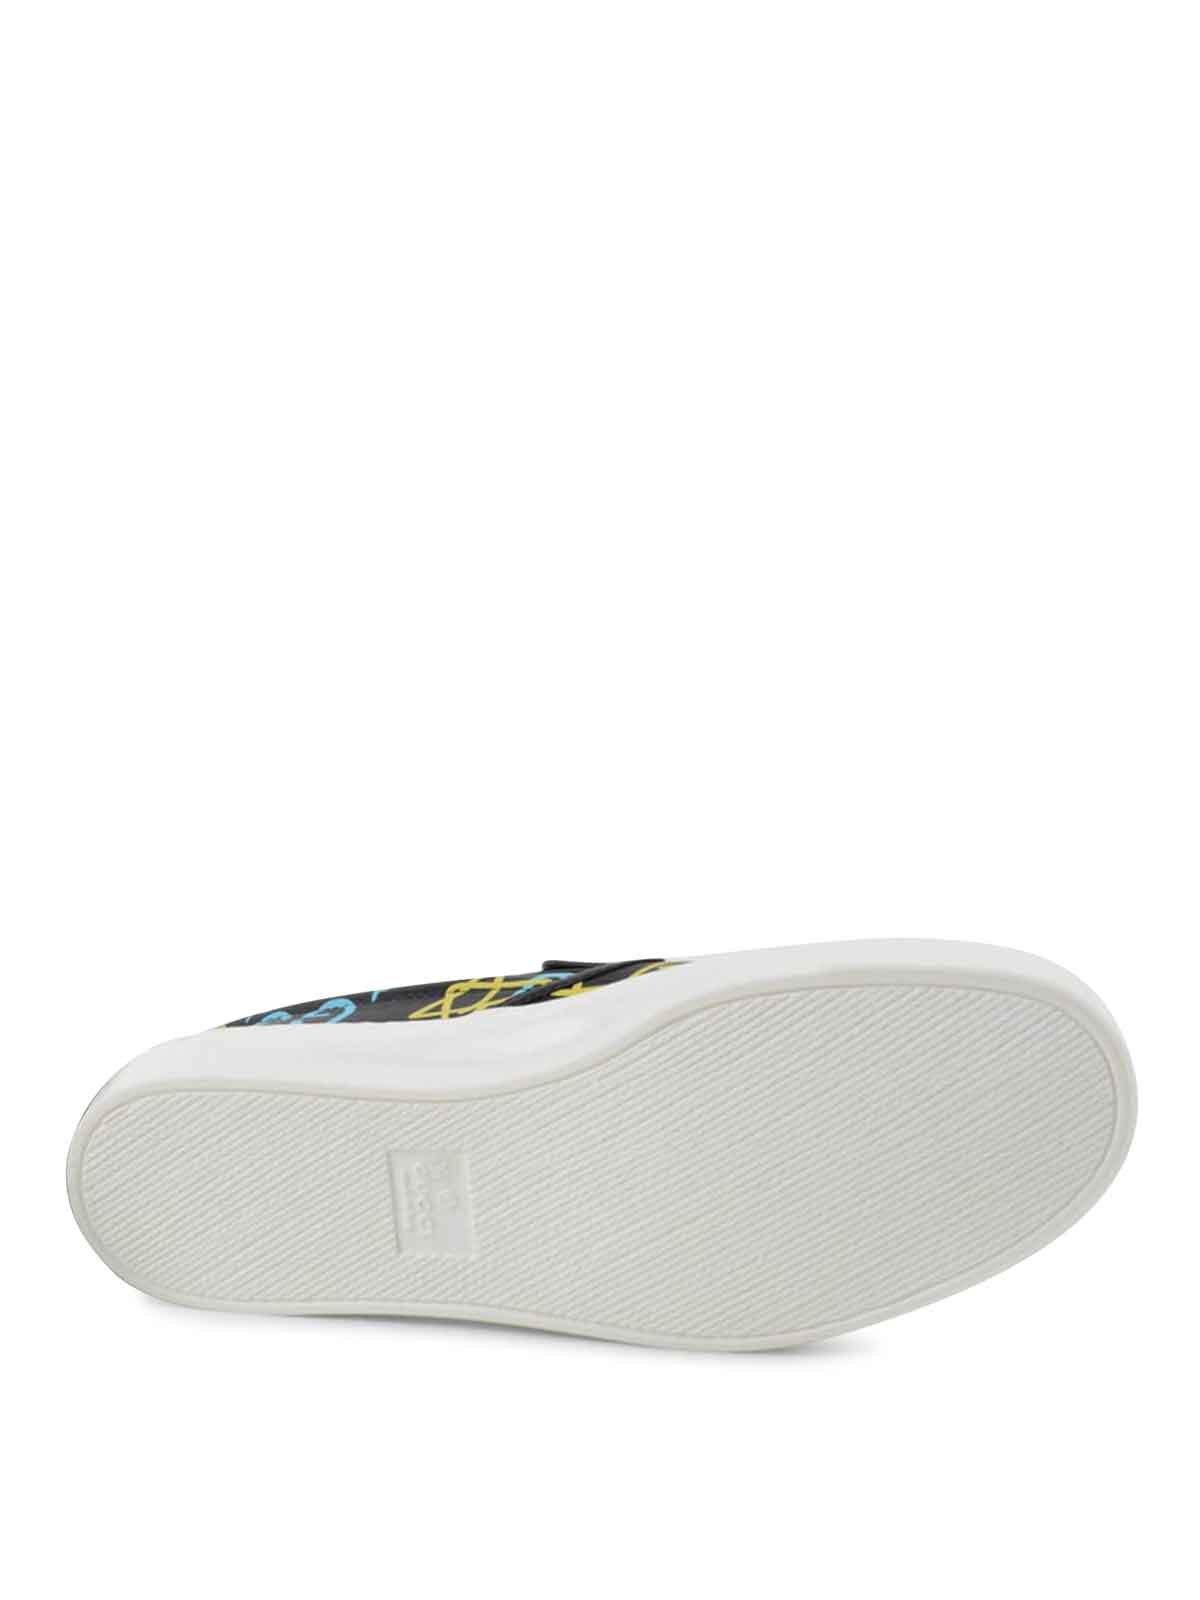 e3d3b26f0ab Gucci - GuggiGhost slip-ons - trainers - 408510DSS30 8465